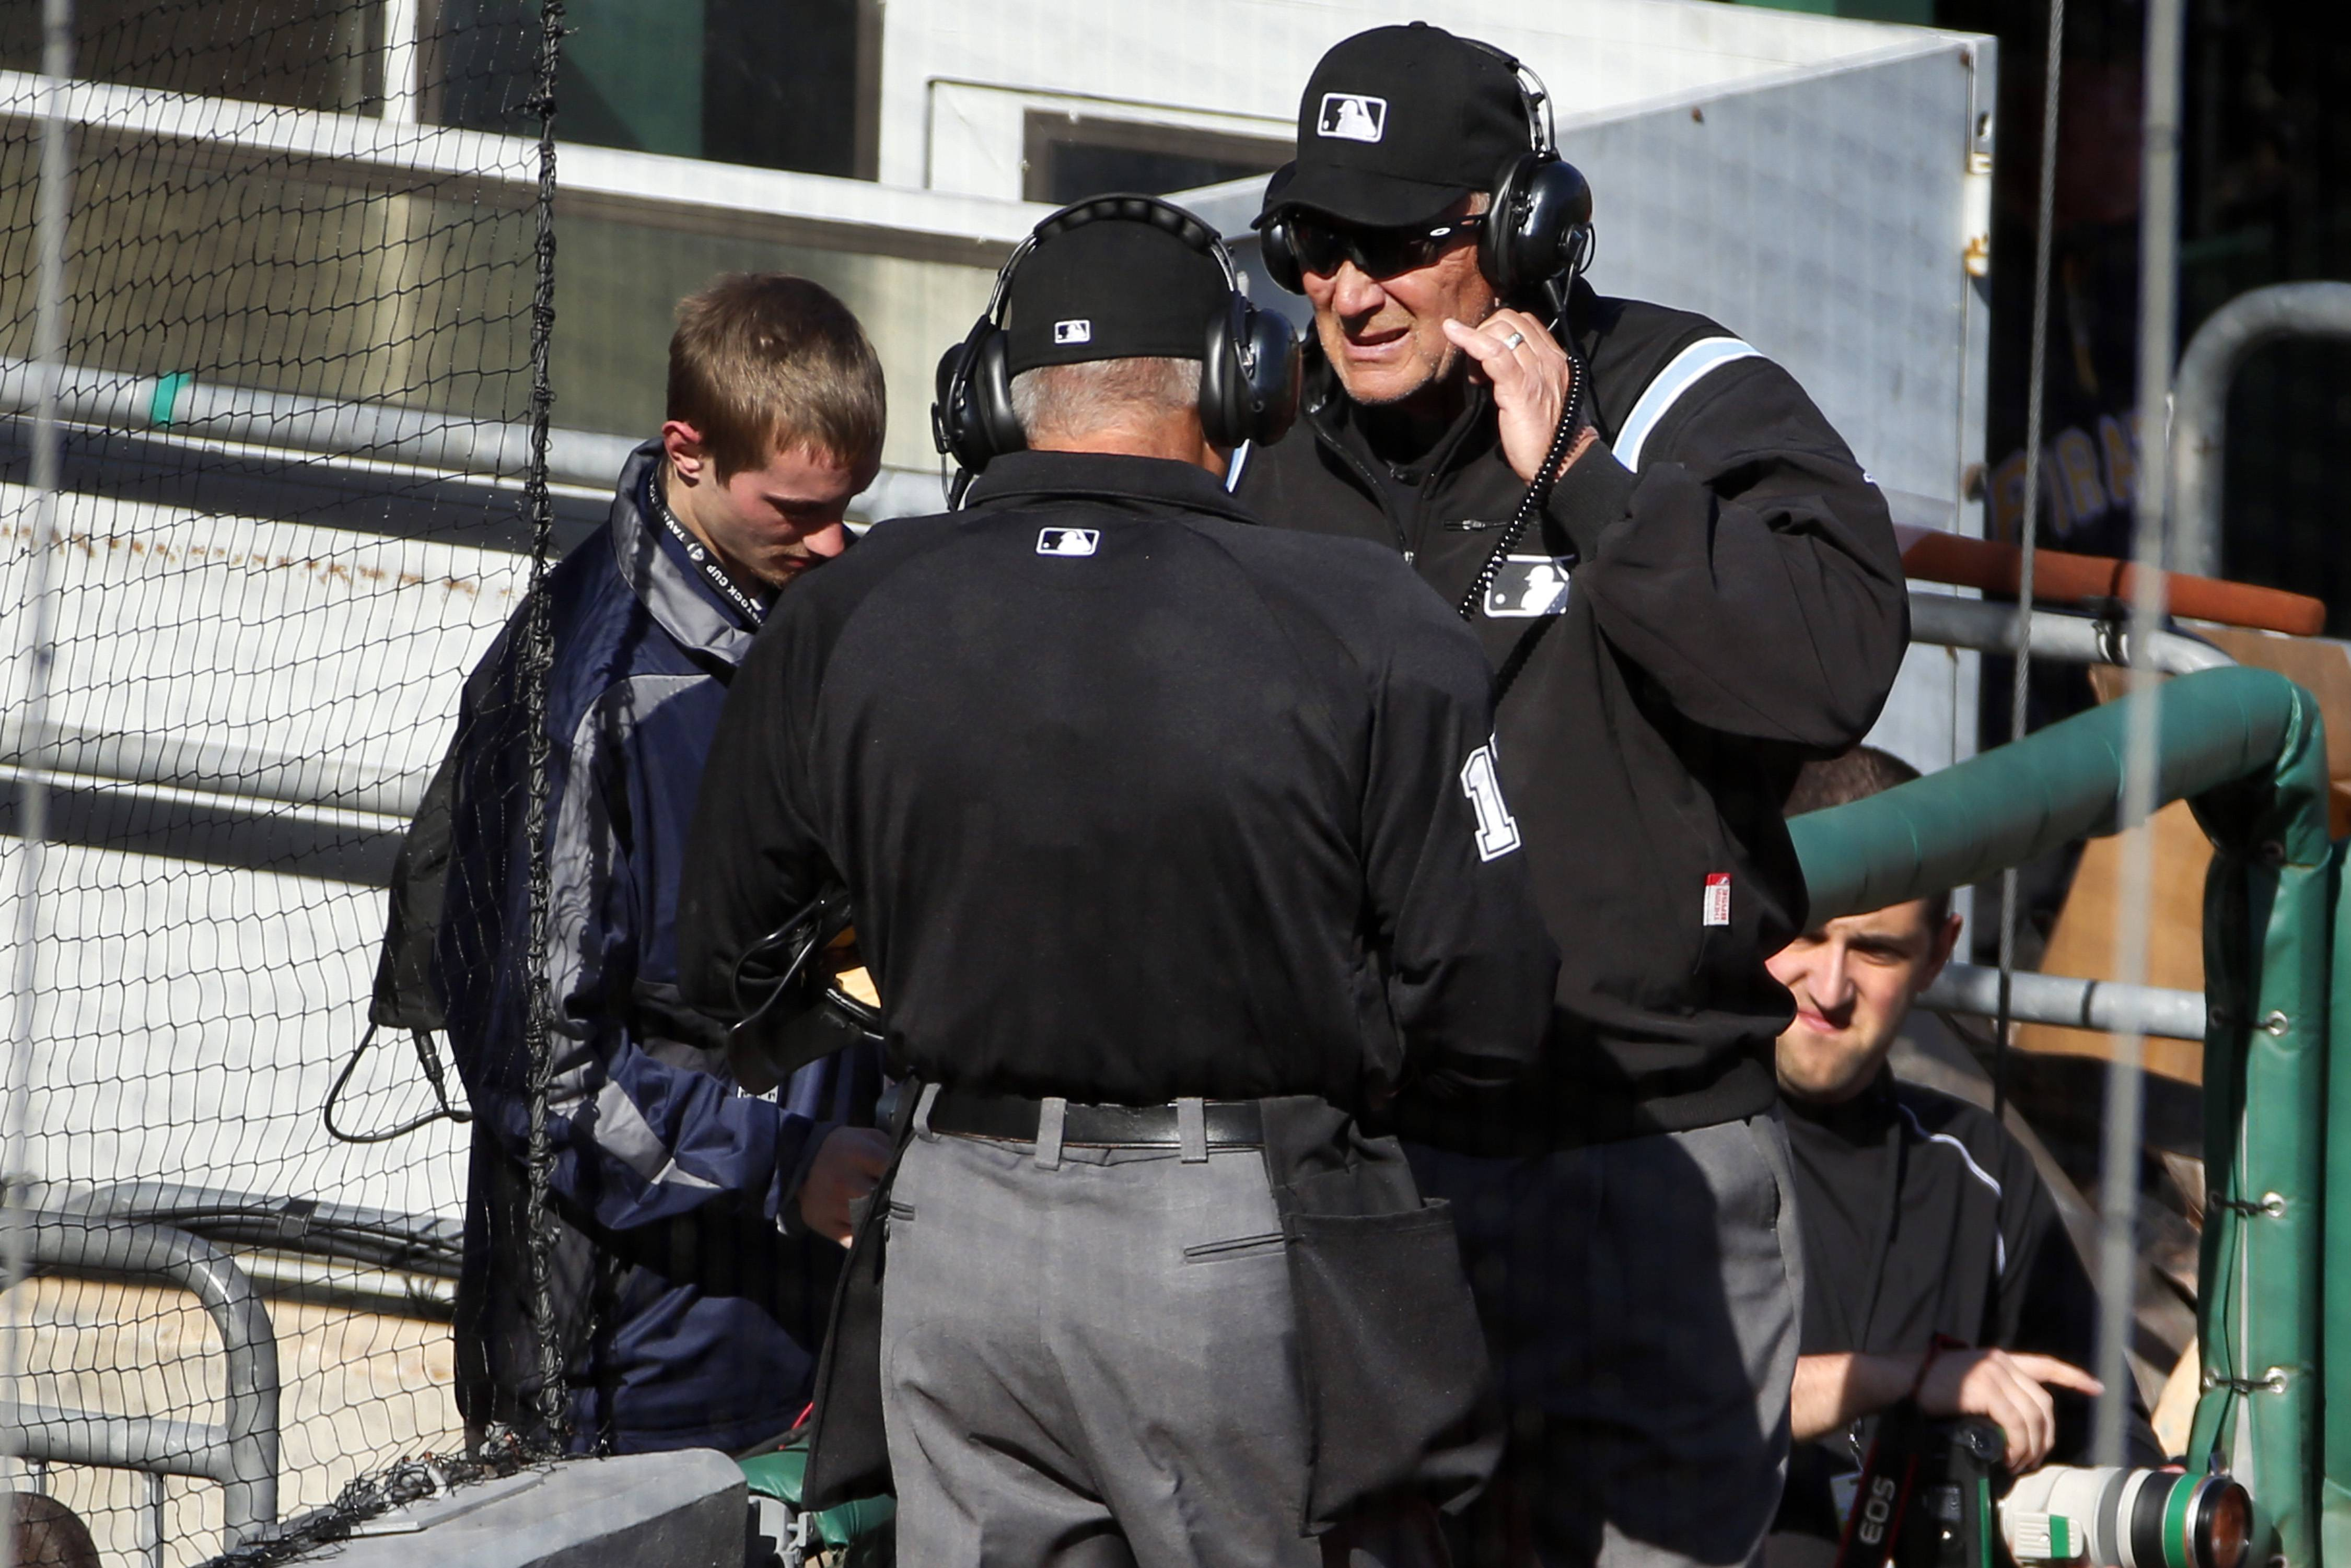 First base umpire Bob Davidson, right, and home plate umpire John Hirschbeck talk over headsets as a pickoff safe call at first base is reviewed in the tenth inning.